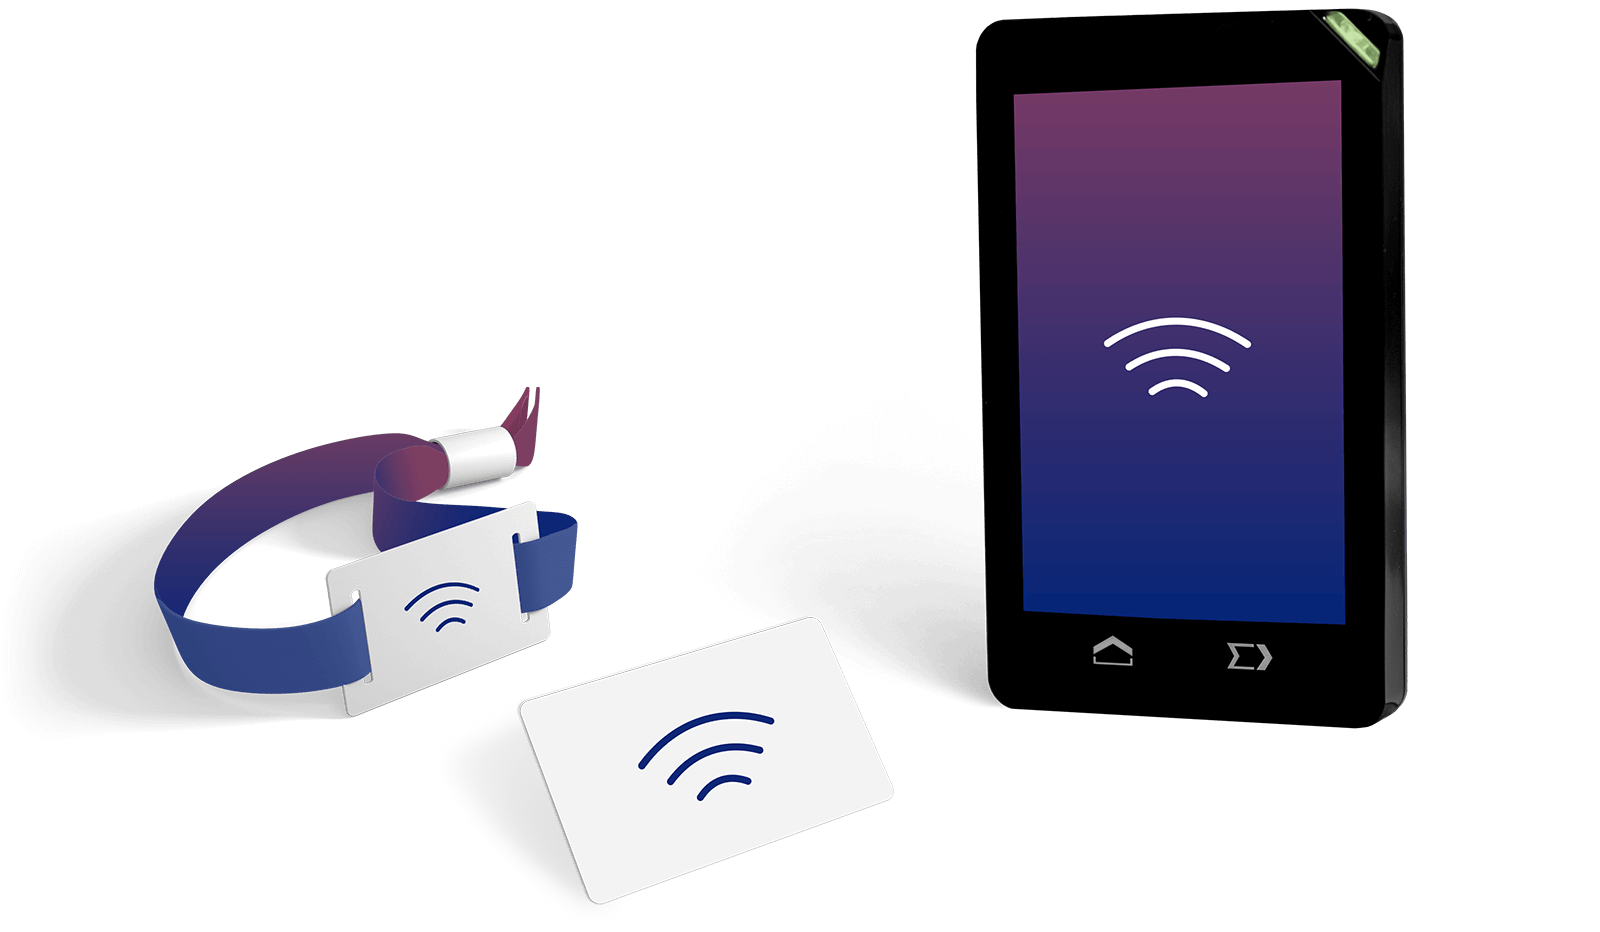 RFID wristband, card and reader